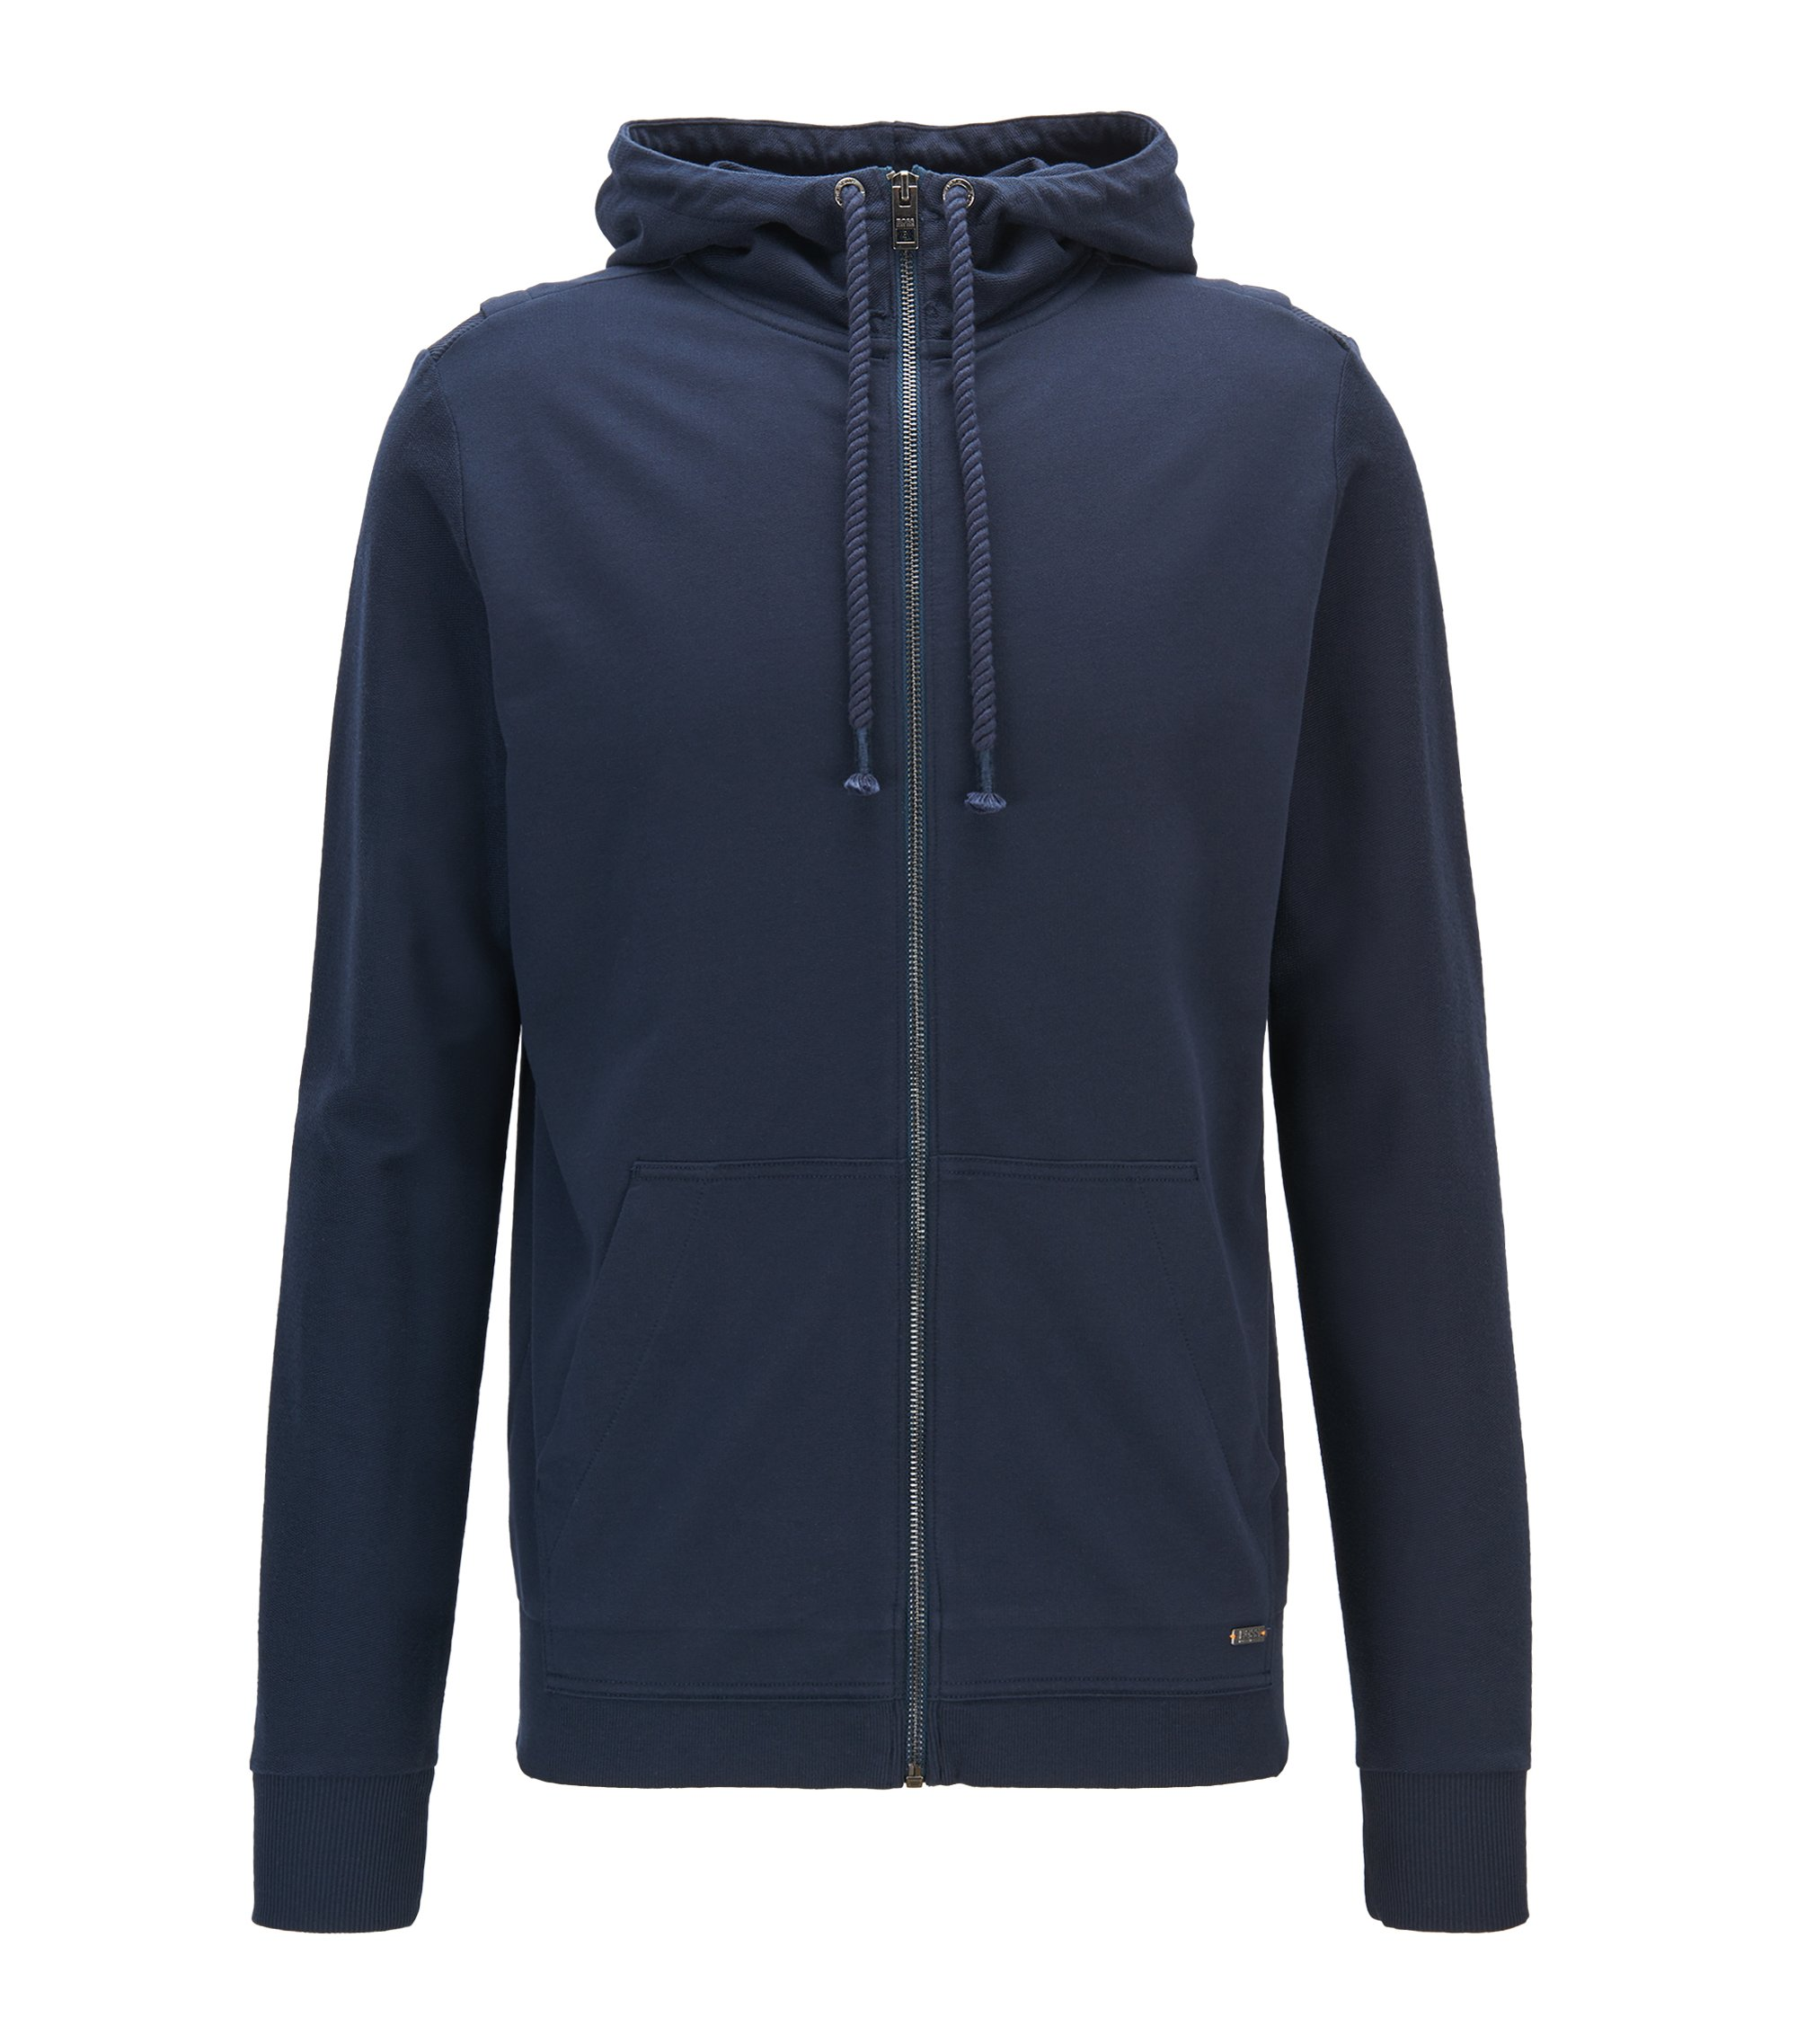 French Terry Cotton Hoodie | Zilder, Dark Blue